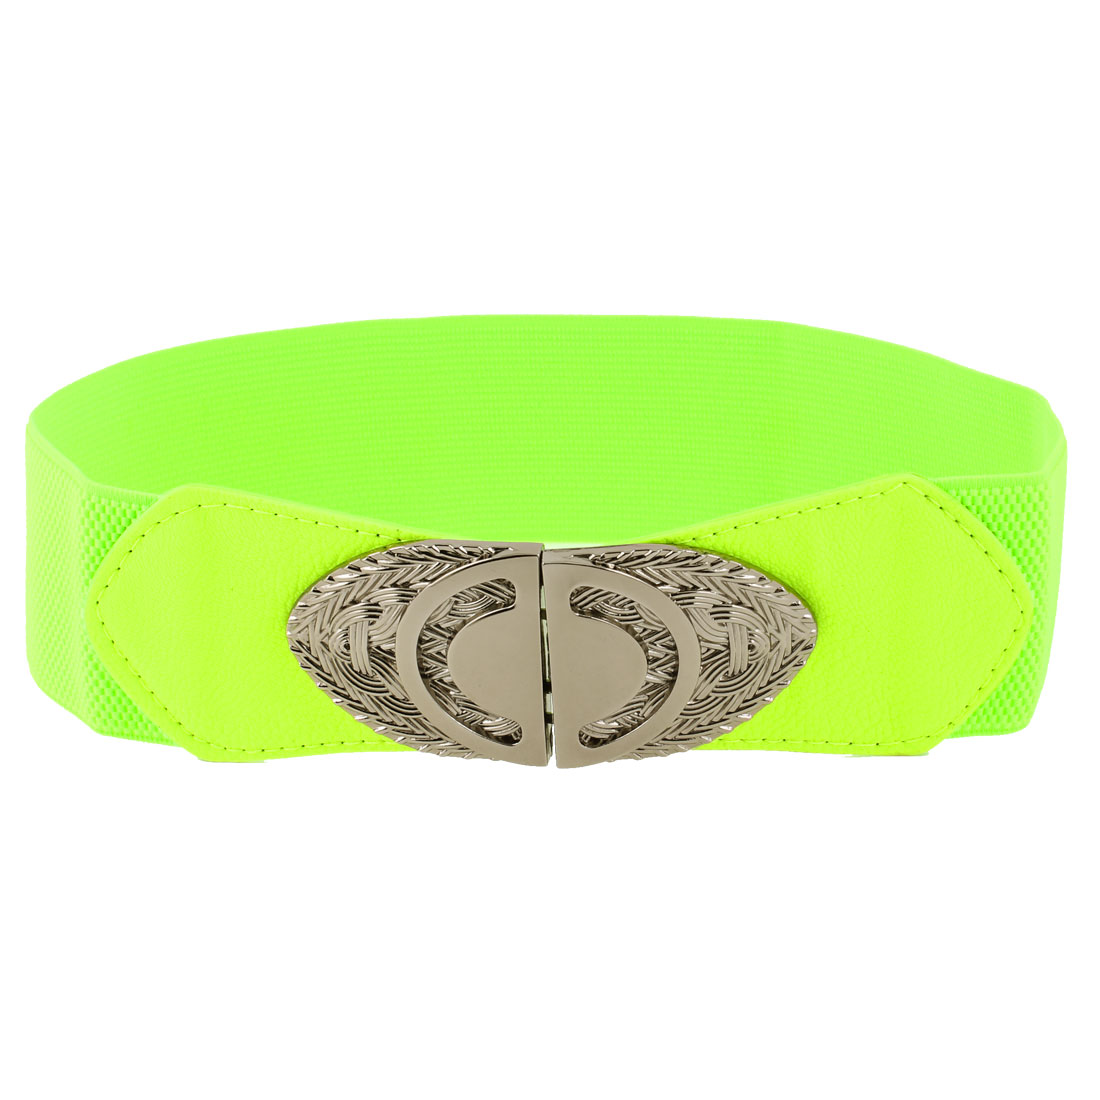 Lady Metal Interlocking Buckle Stretchy Waistbelt Cinch Belt Yellow Green